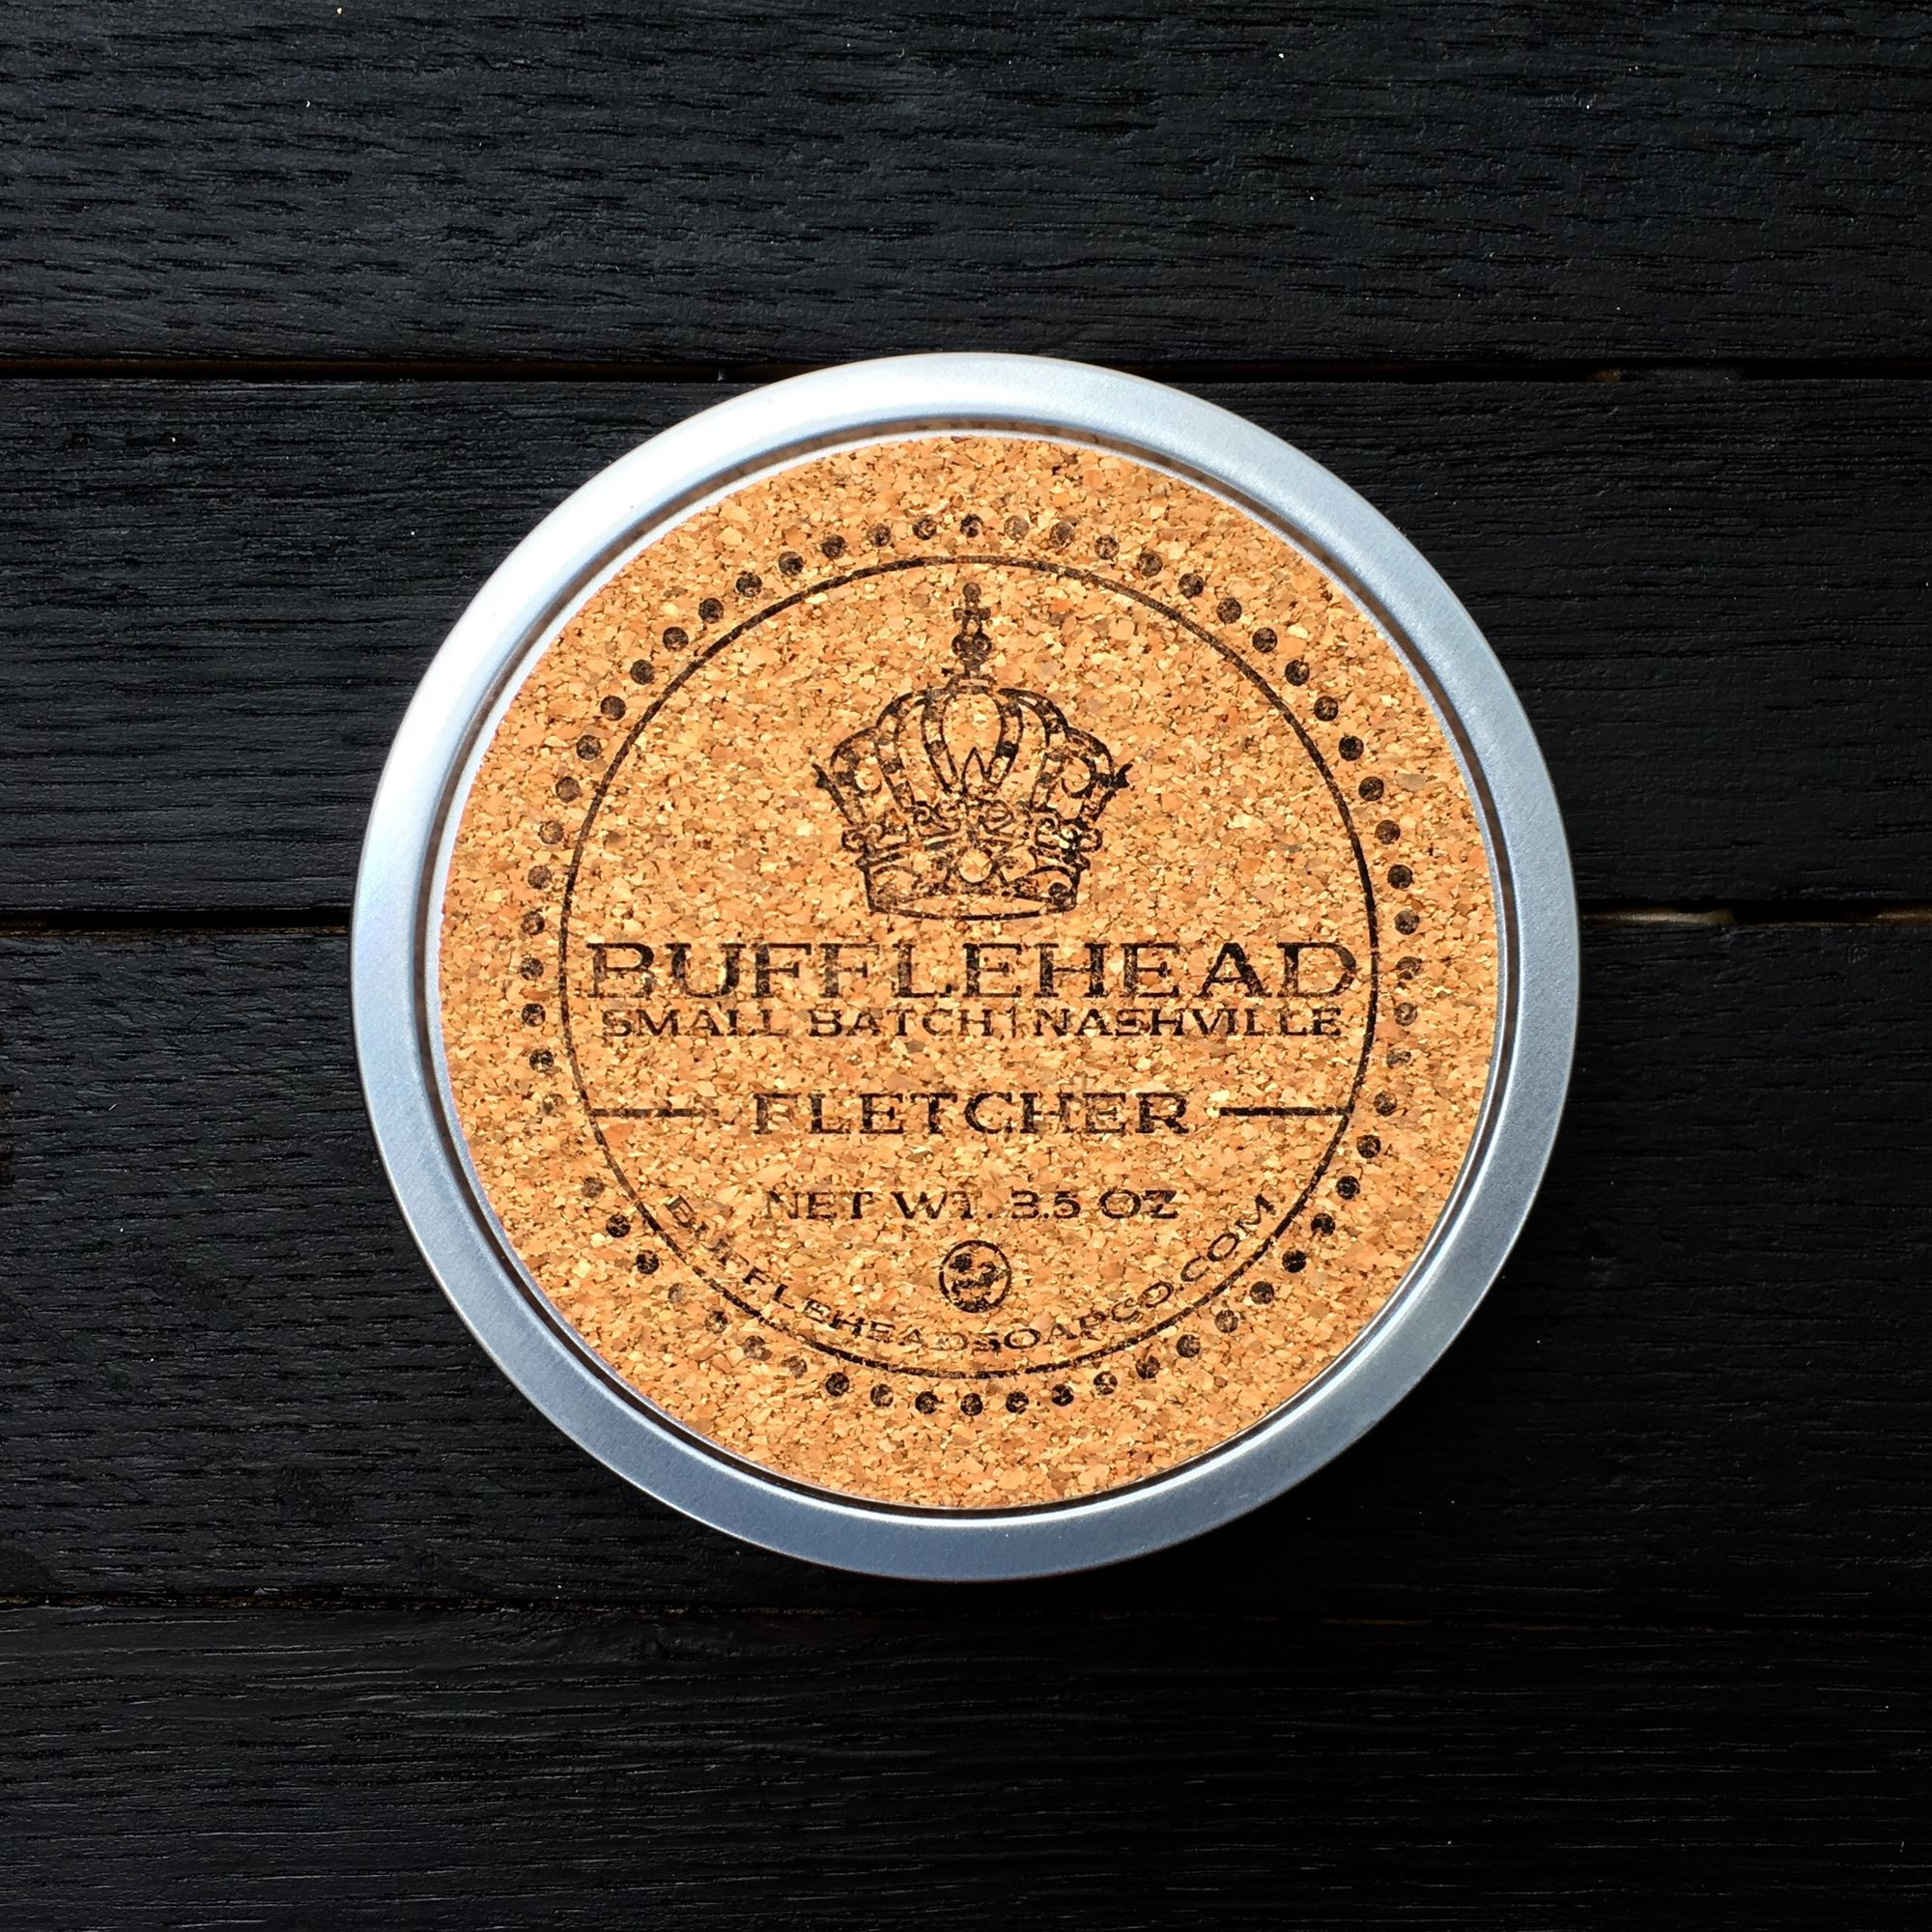 Bufflehead Soap Co. - Fletcher - Soap image